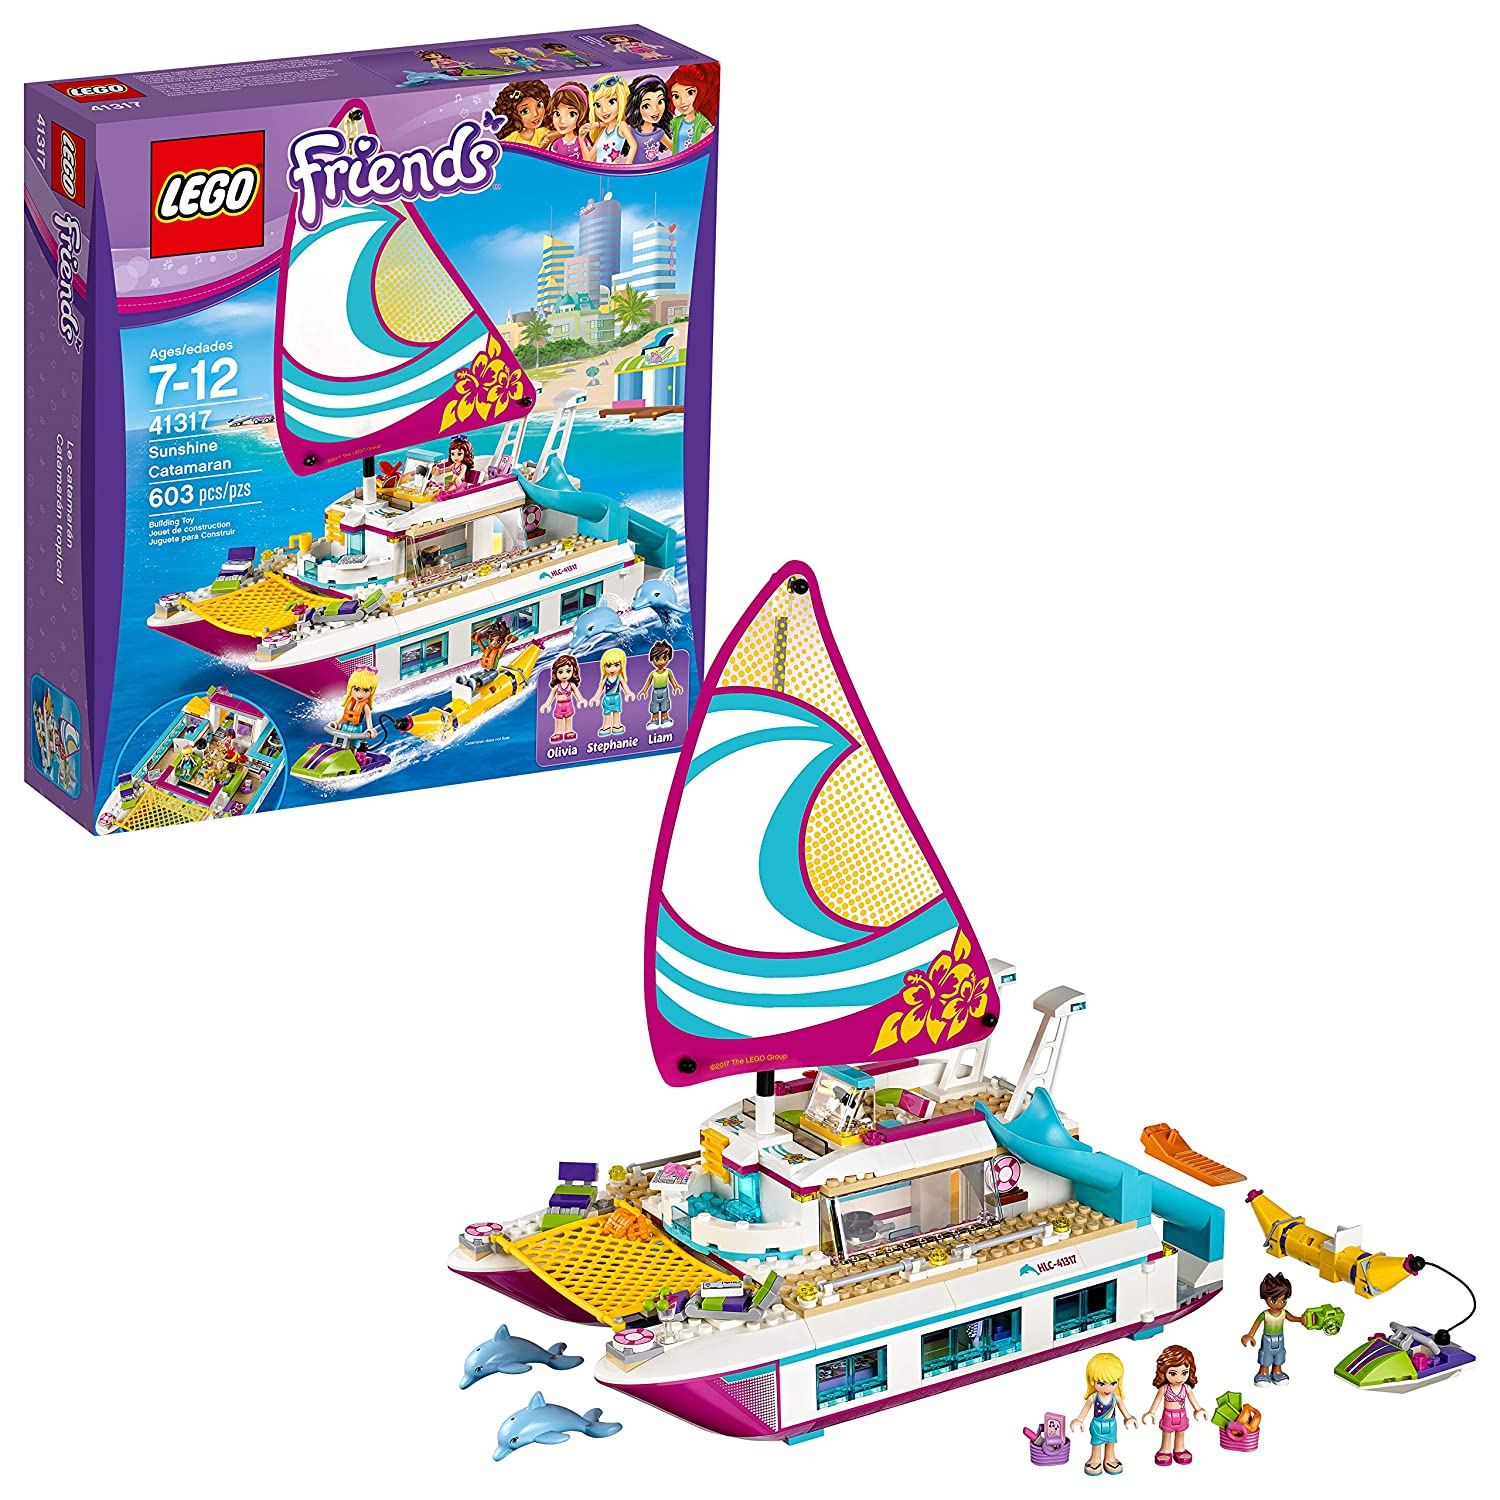 LEGO Friends Sunshine Catamaran Building Kit, 603 Piece 41317